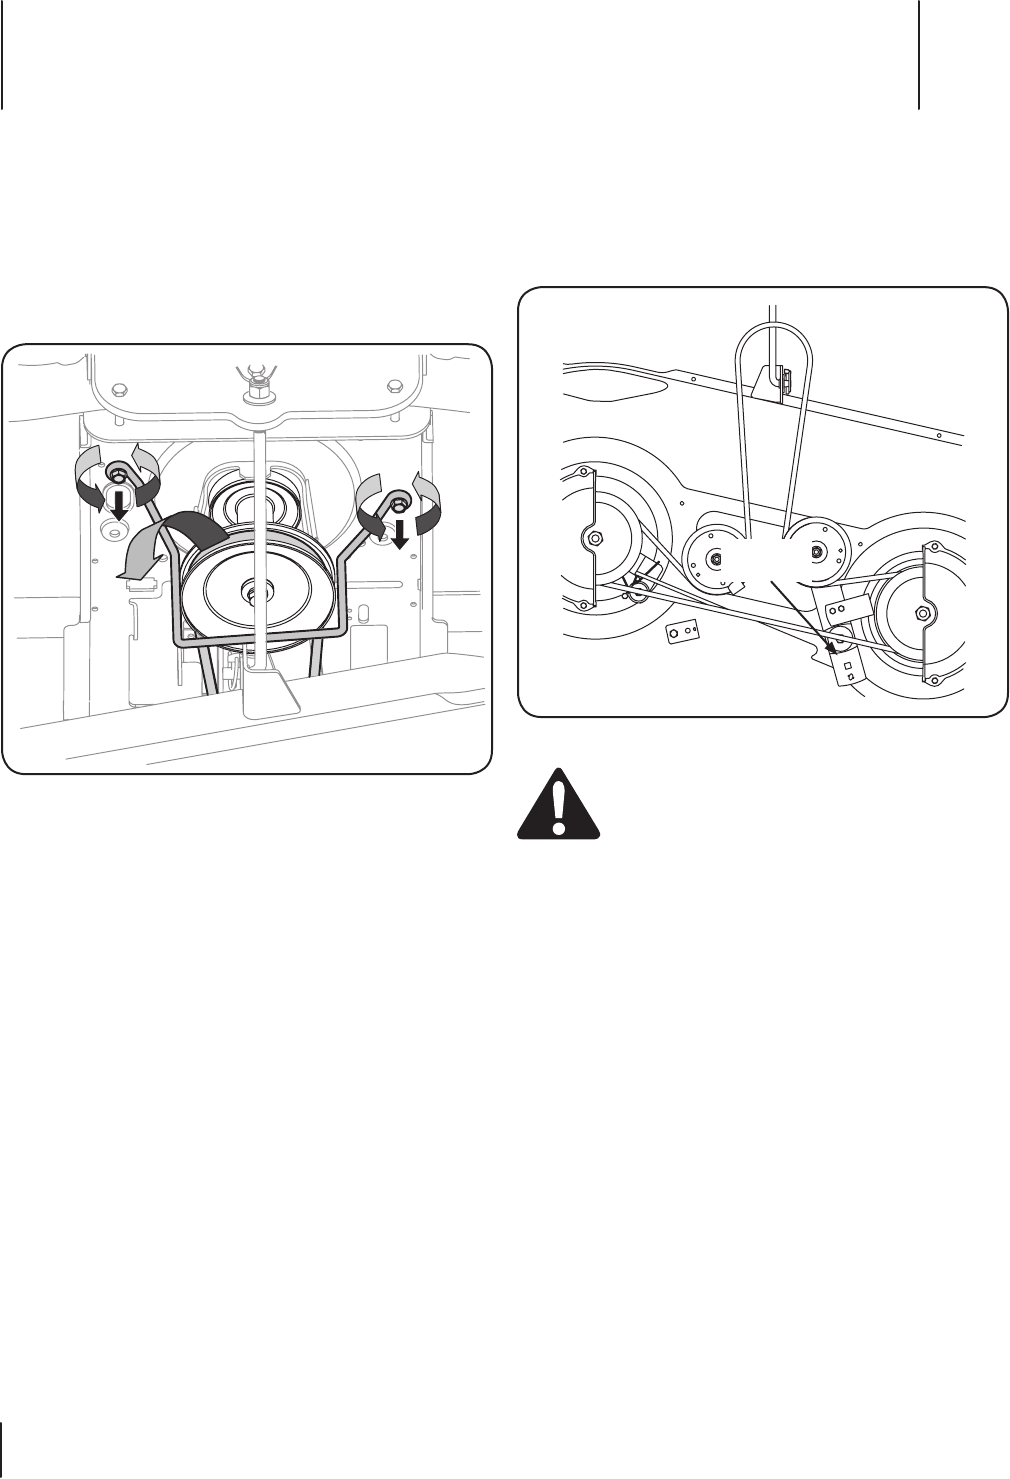 Page 24 of Cub Cadet Lawn Mower LTX1045 User Guide